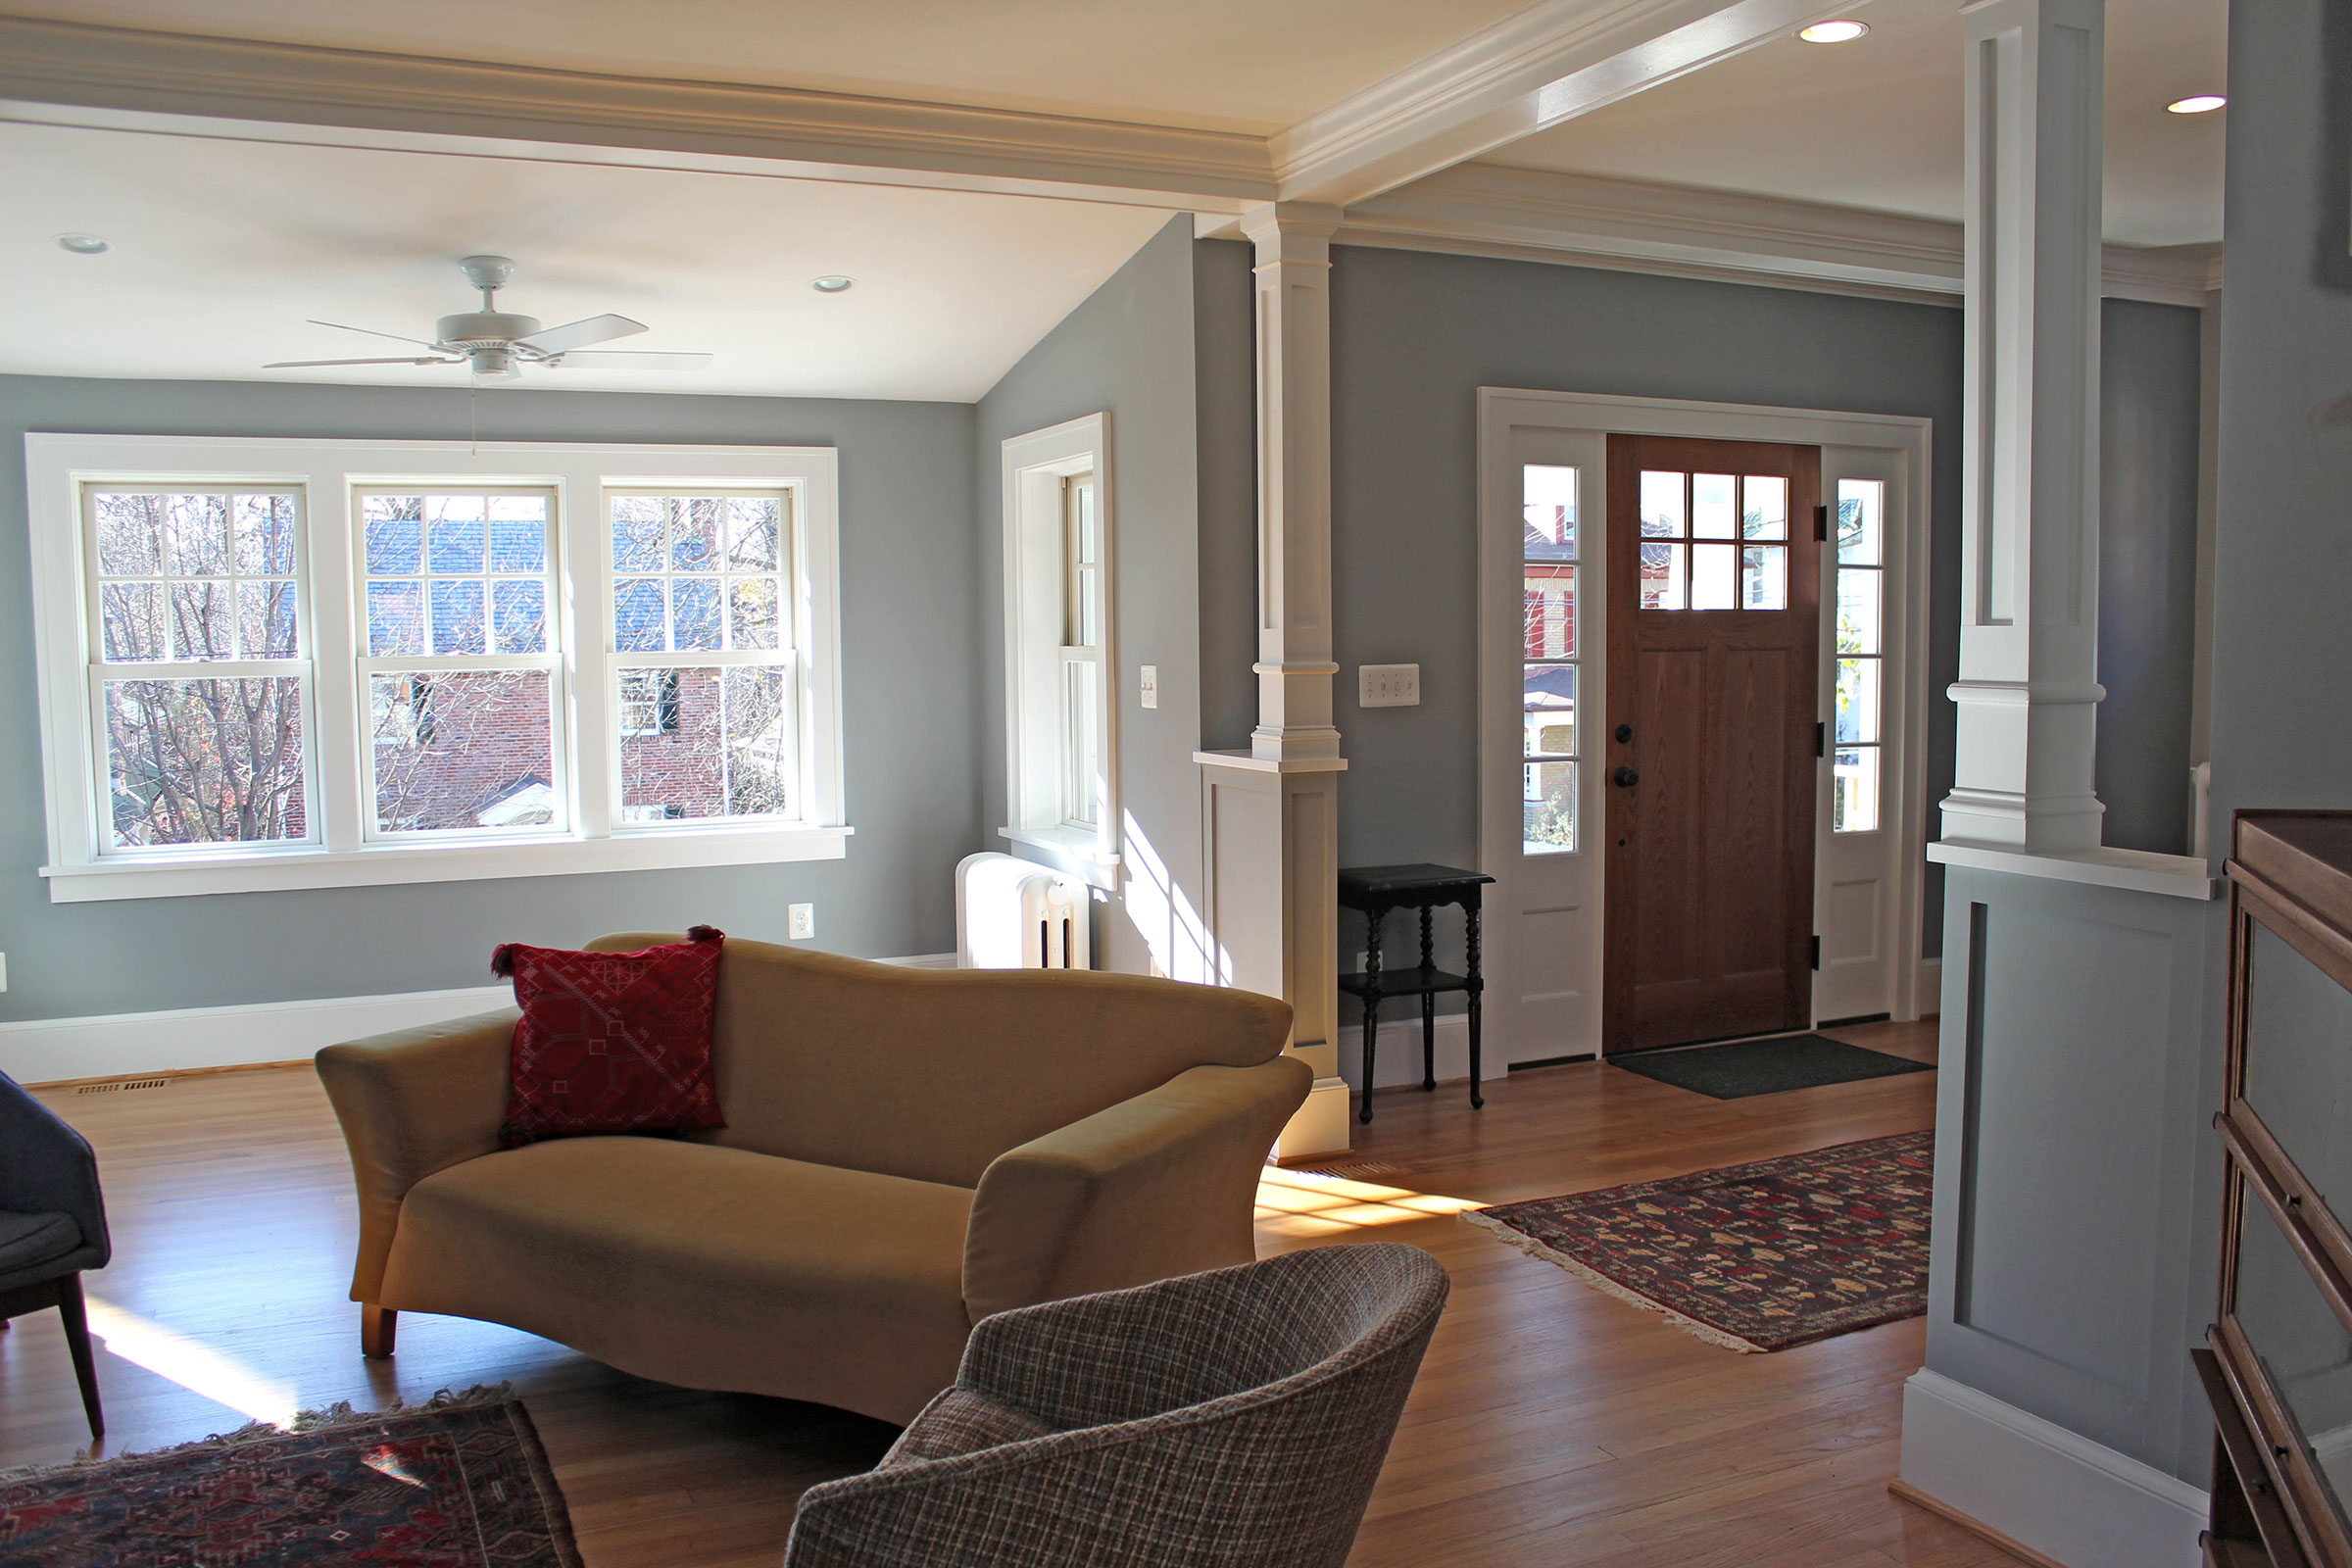 17-Renovated-living-room-and-front-door-ed-Opt